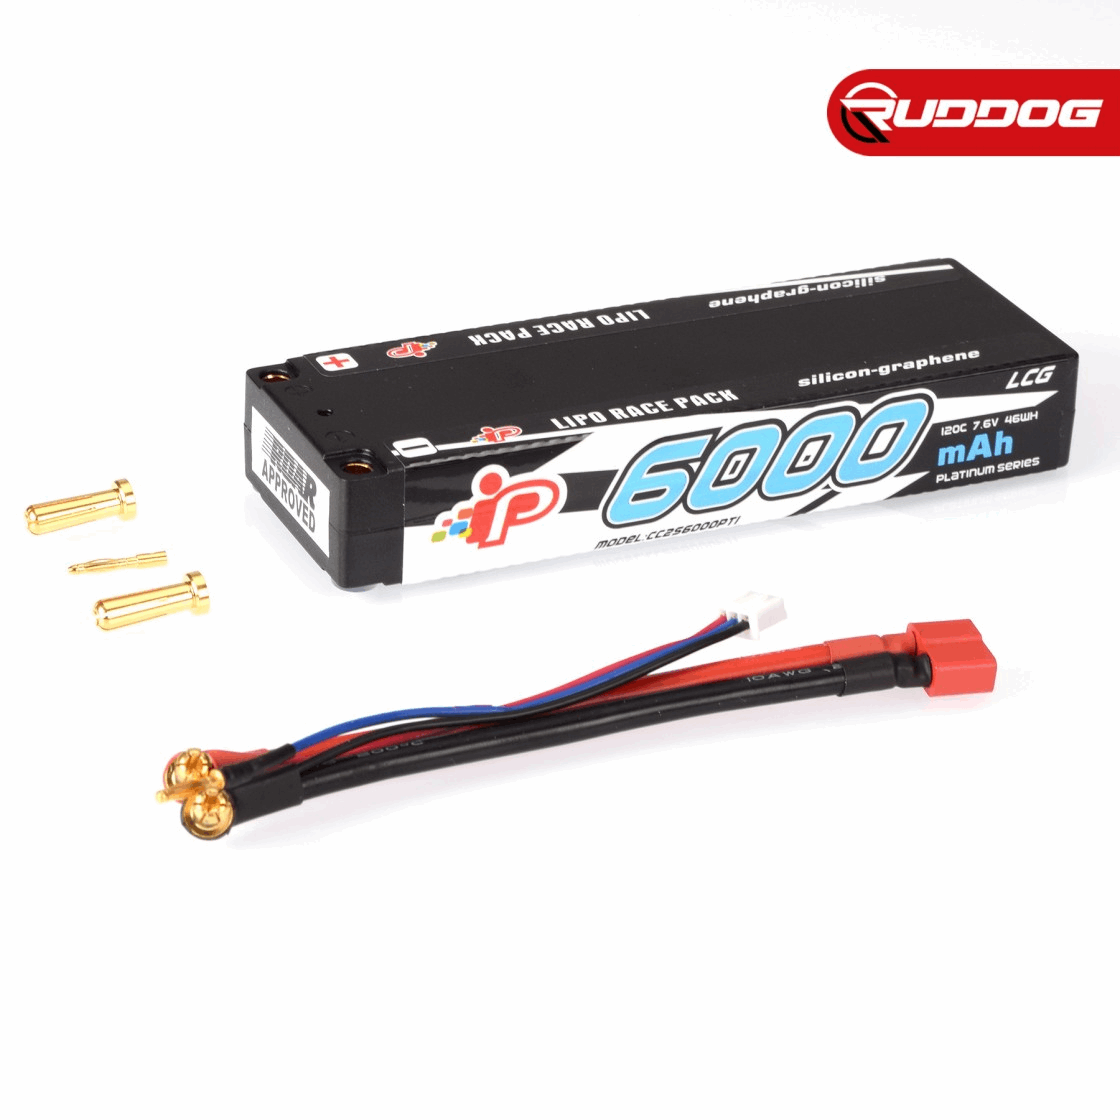 Intellect 6000mAh 120C 7.6V High Power LCG Graphene Stick Pack LiHV